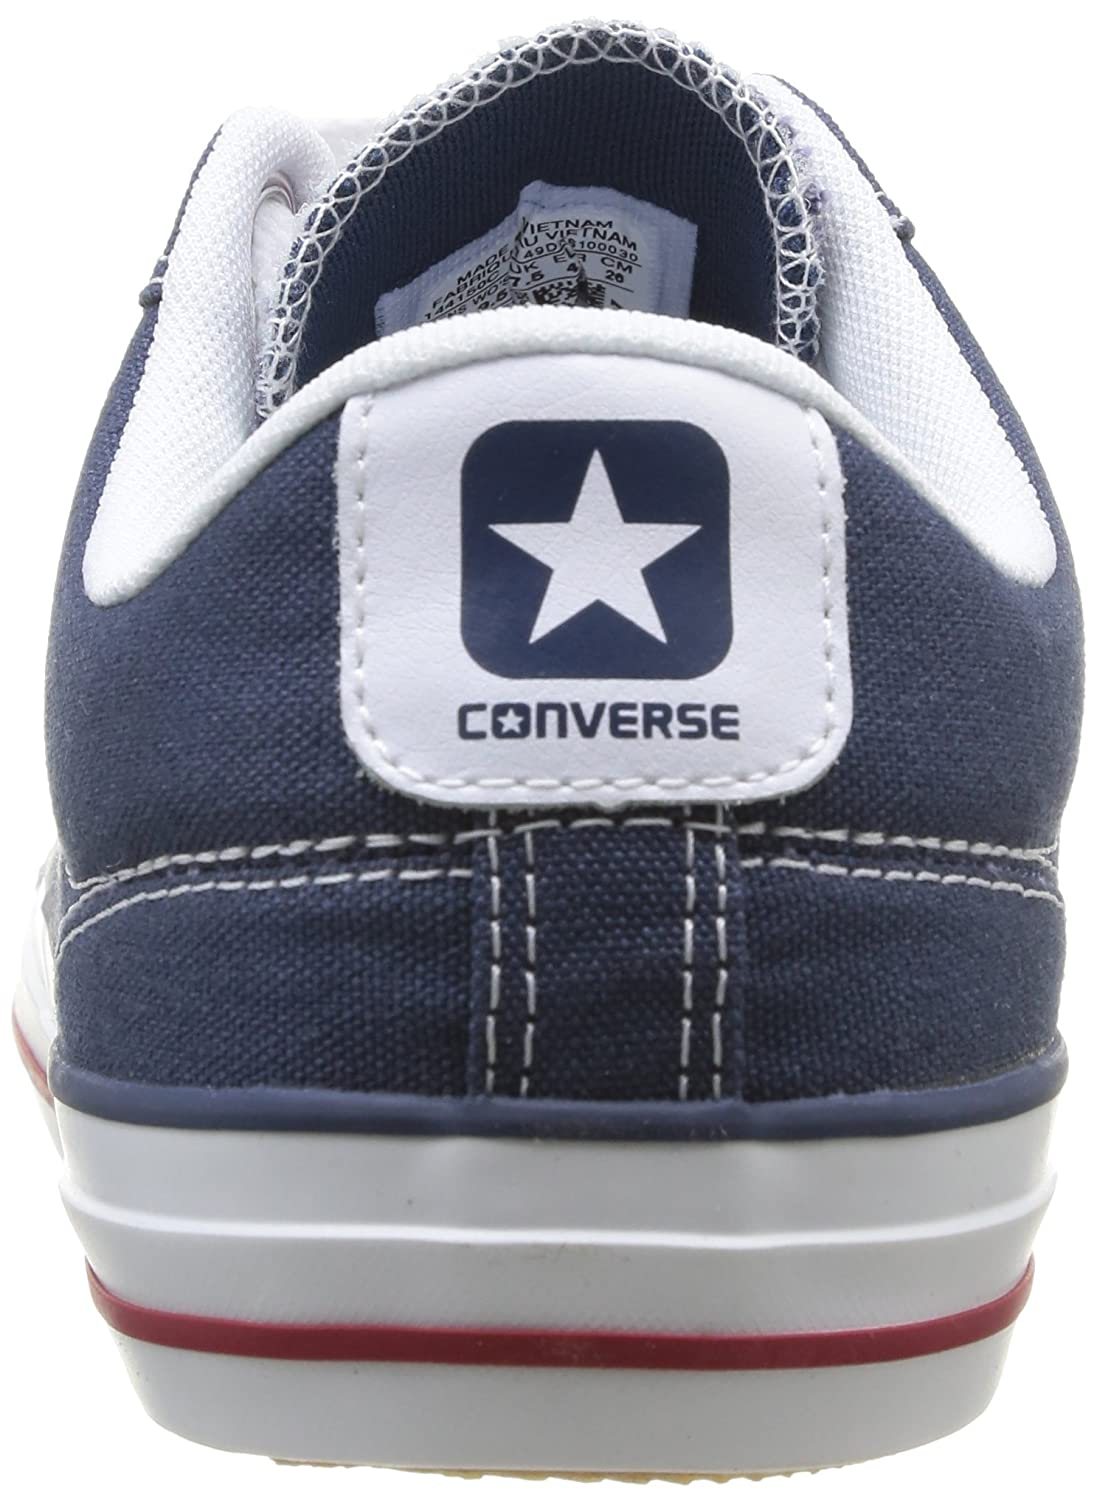 star player homme converse 289162 ZscB0T